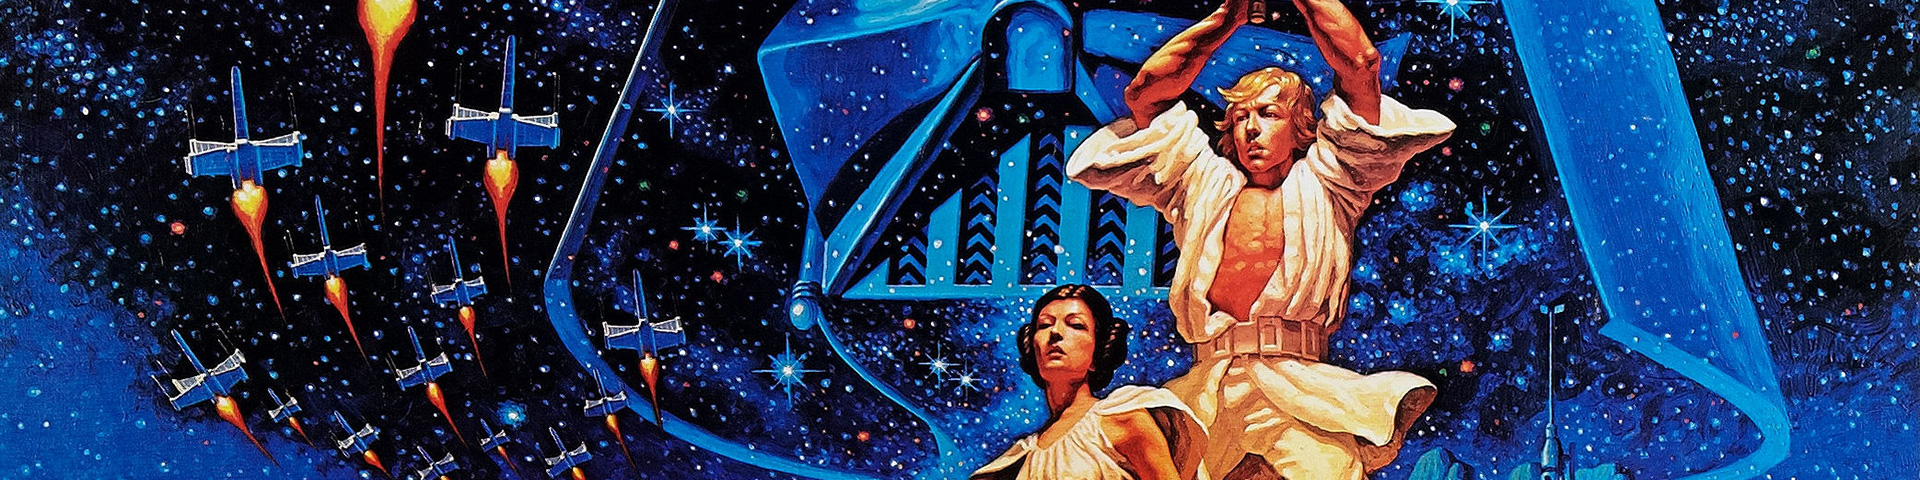 Star Wars Hildebrandt Art